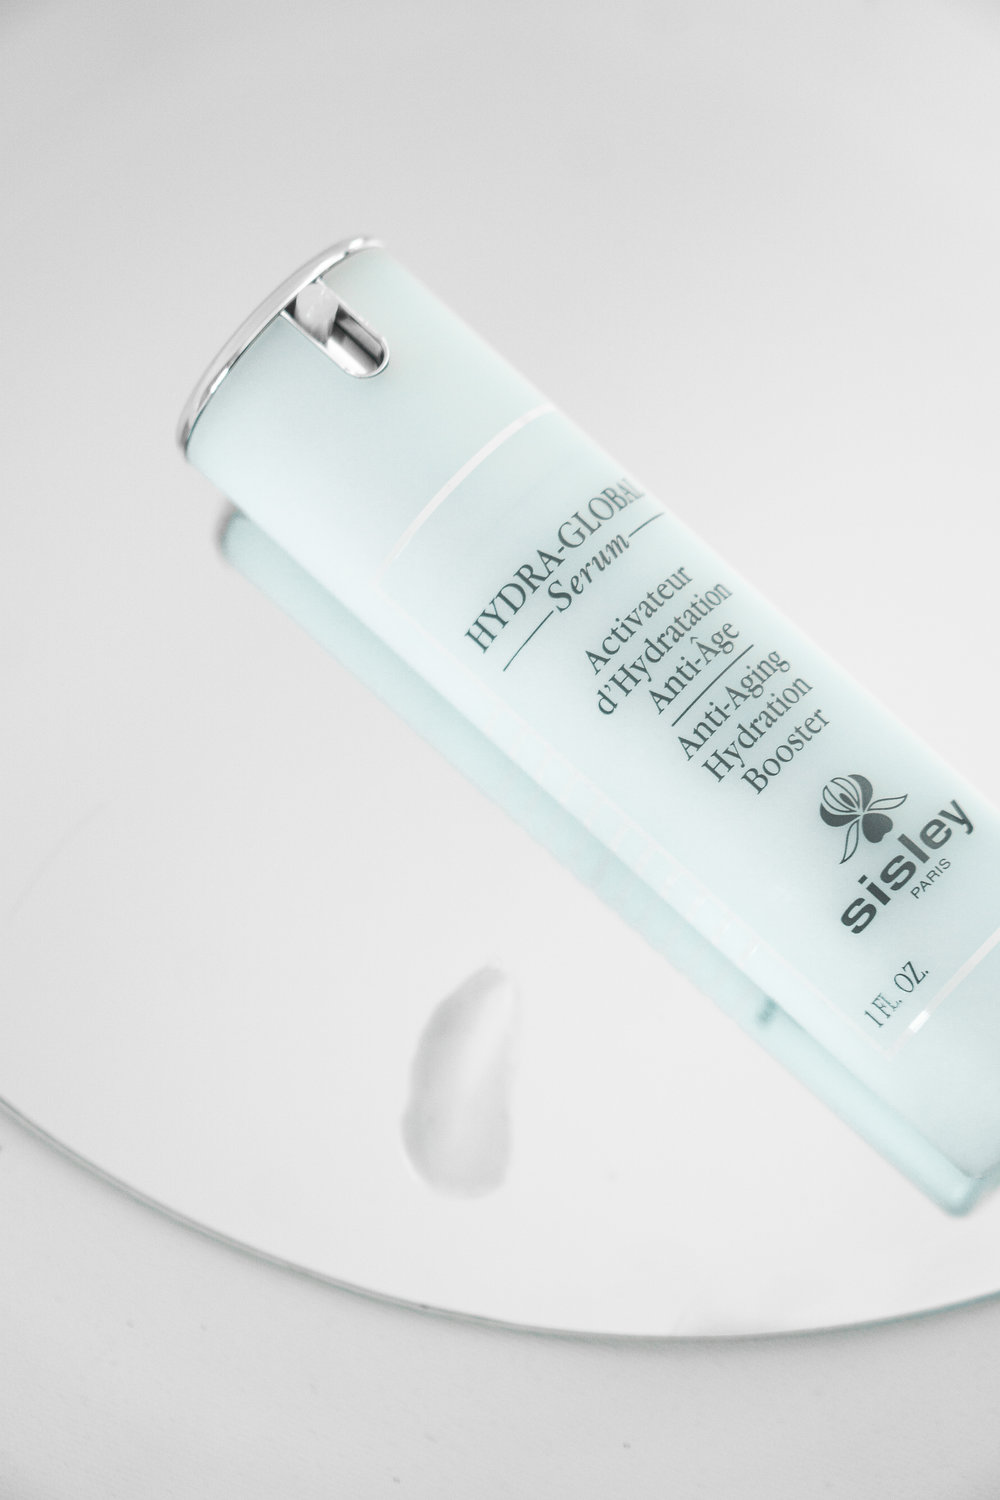 Sisley Hydra-Global Serum, $290.